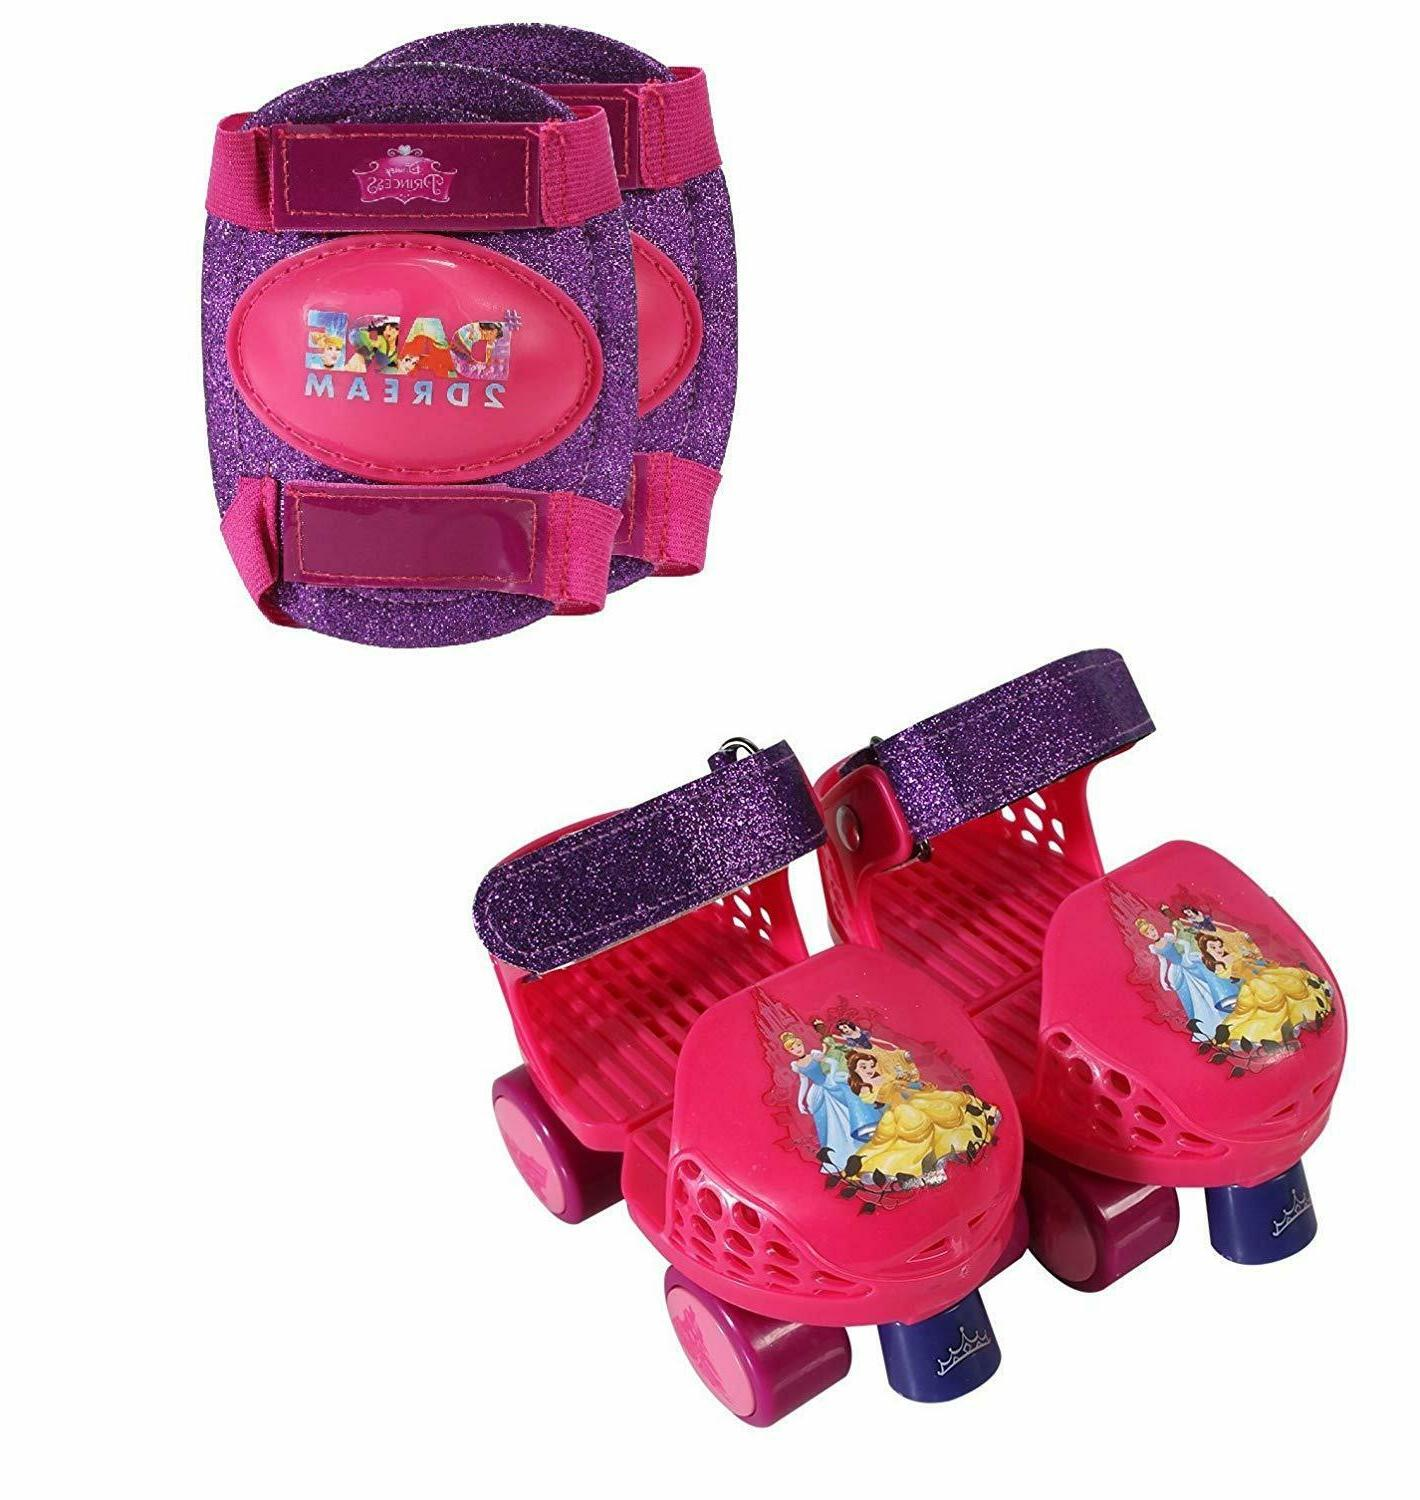 Disney Princess Roller Skates W Knee Pads Junior Size 6 12 F